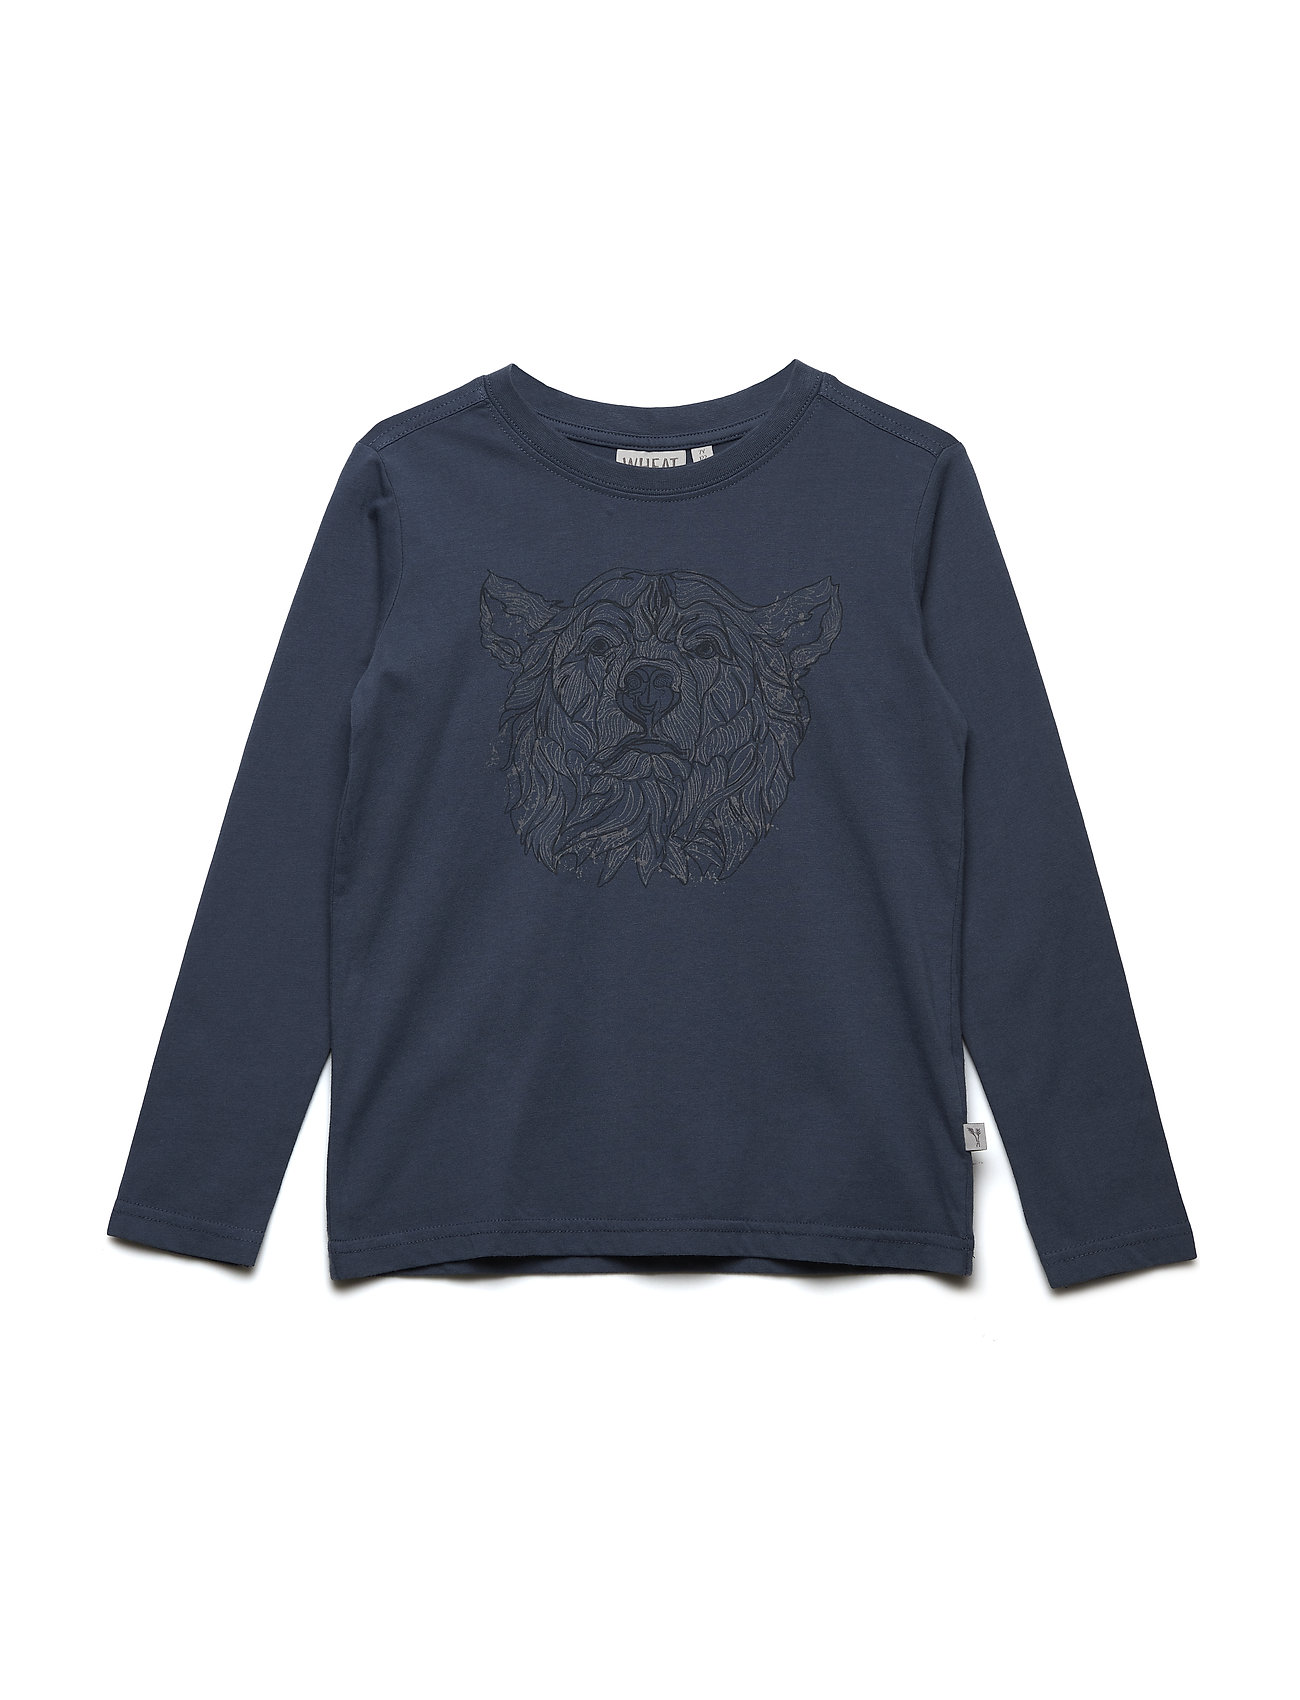 Wheat T-Shirt Bear - BERING SEA